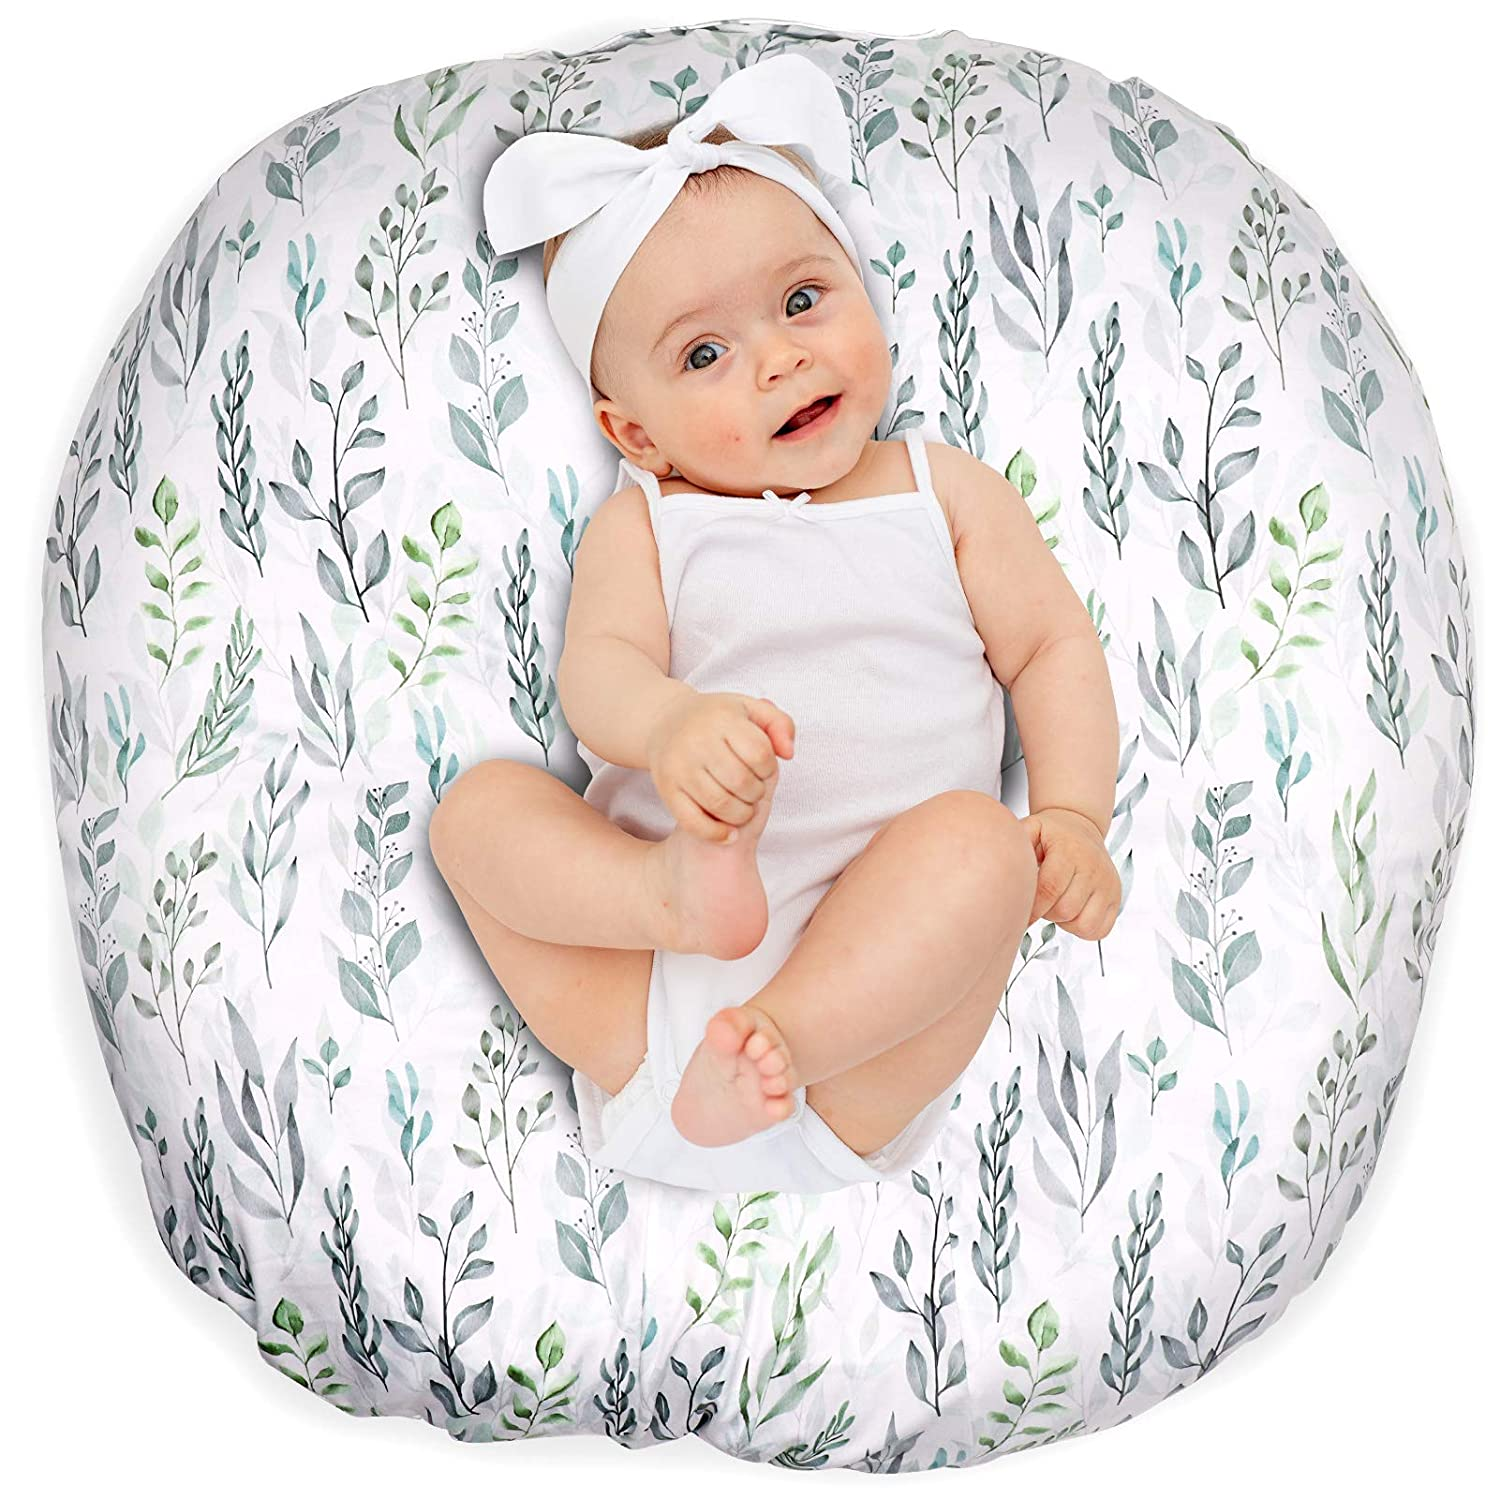 Newborn Lounger Cover Removable Cover Ultra Soft Comfortable Lounger Slipcover Removable Cover for Infant Lounger Pillow (Leaf)